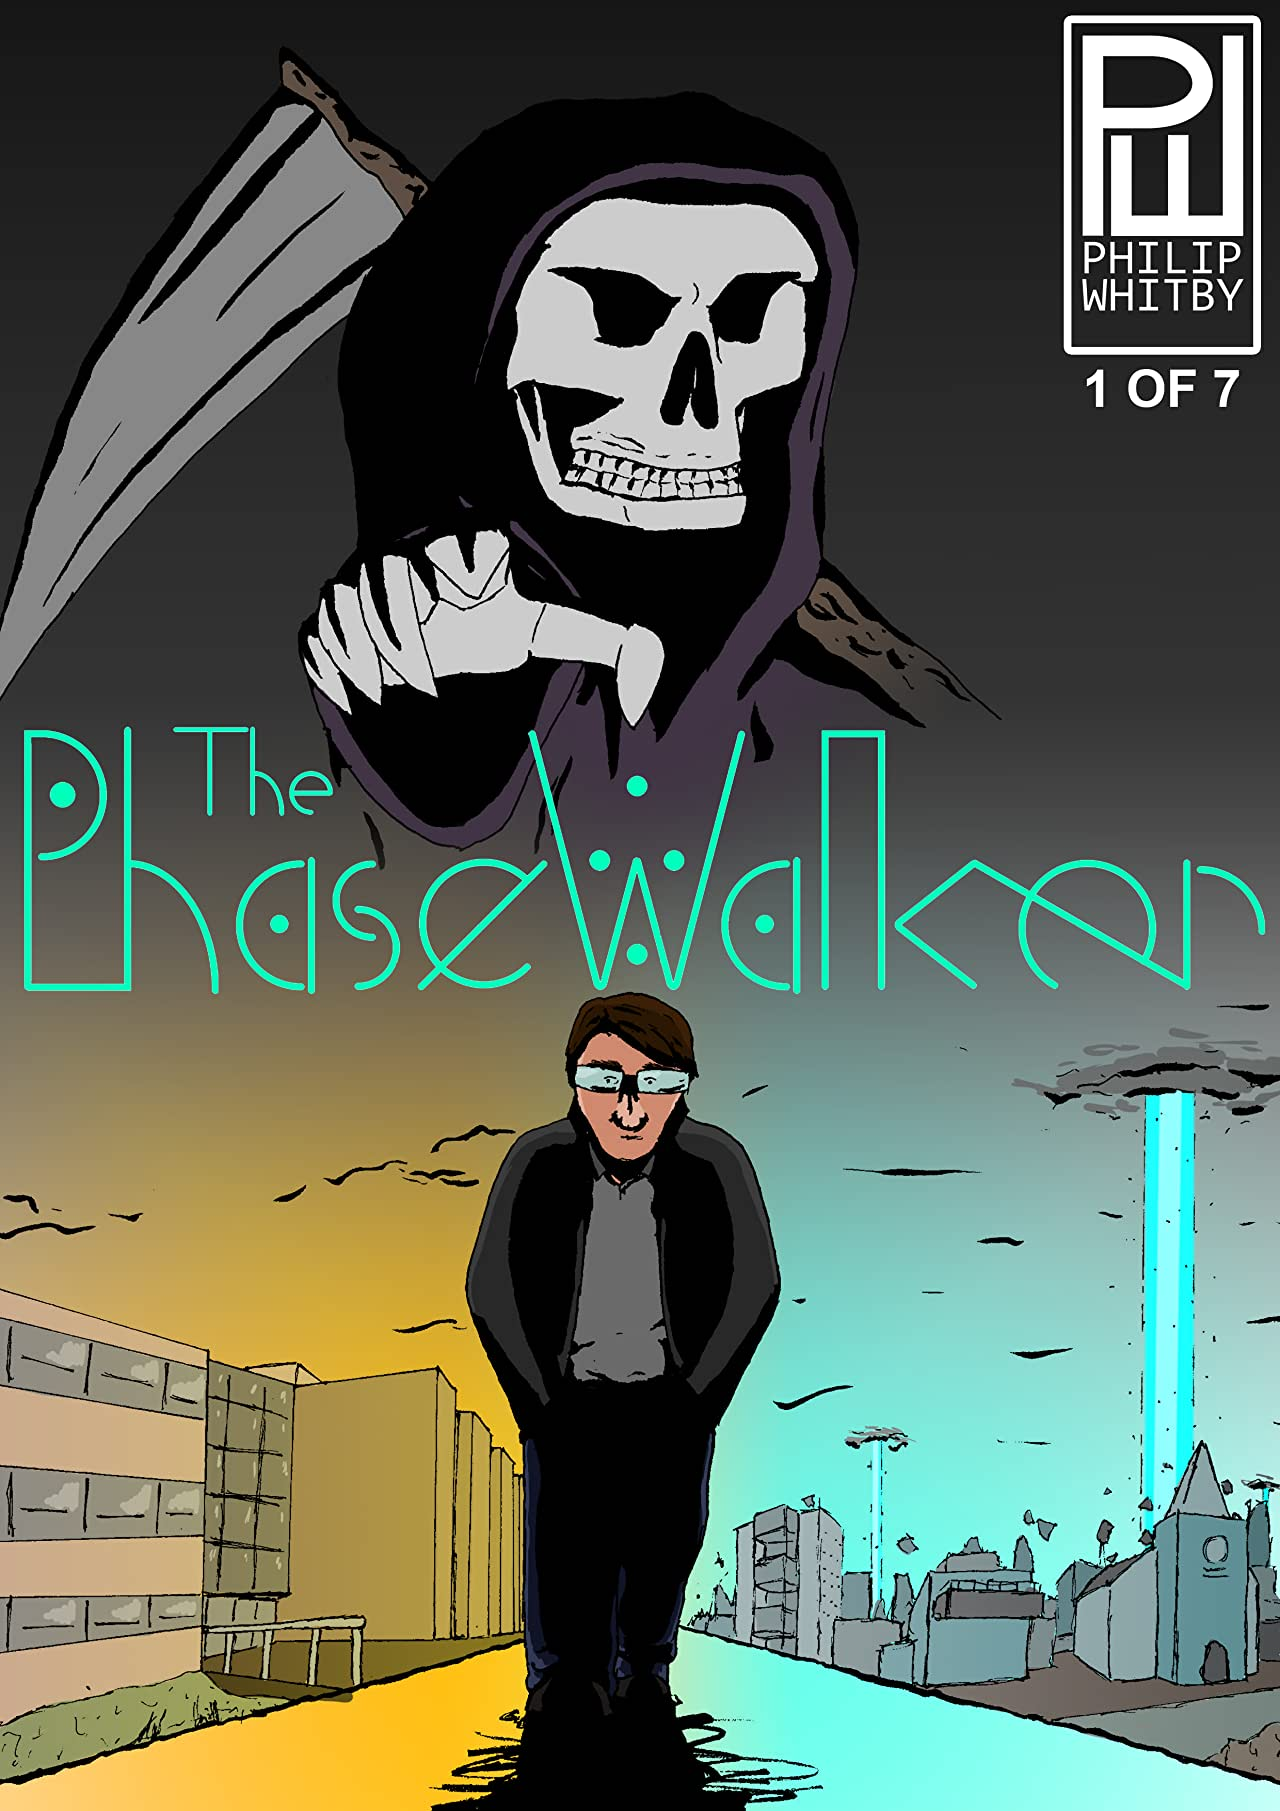 The PhaseWalker #1